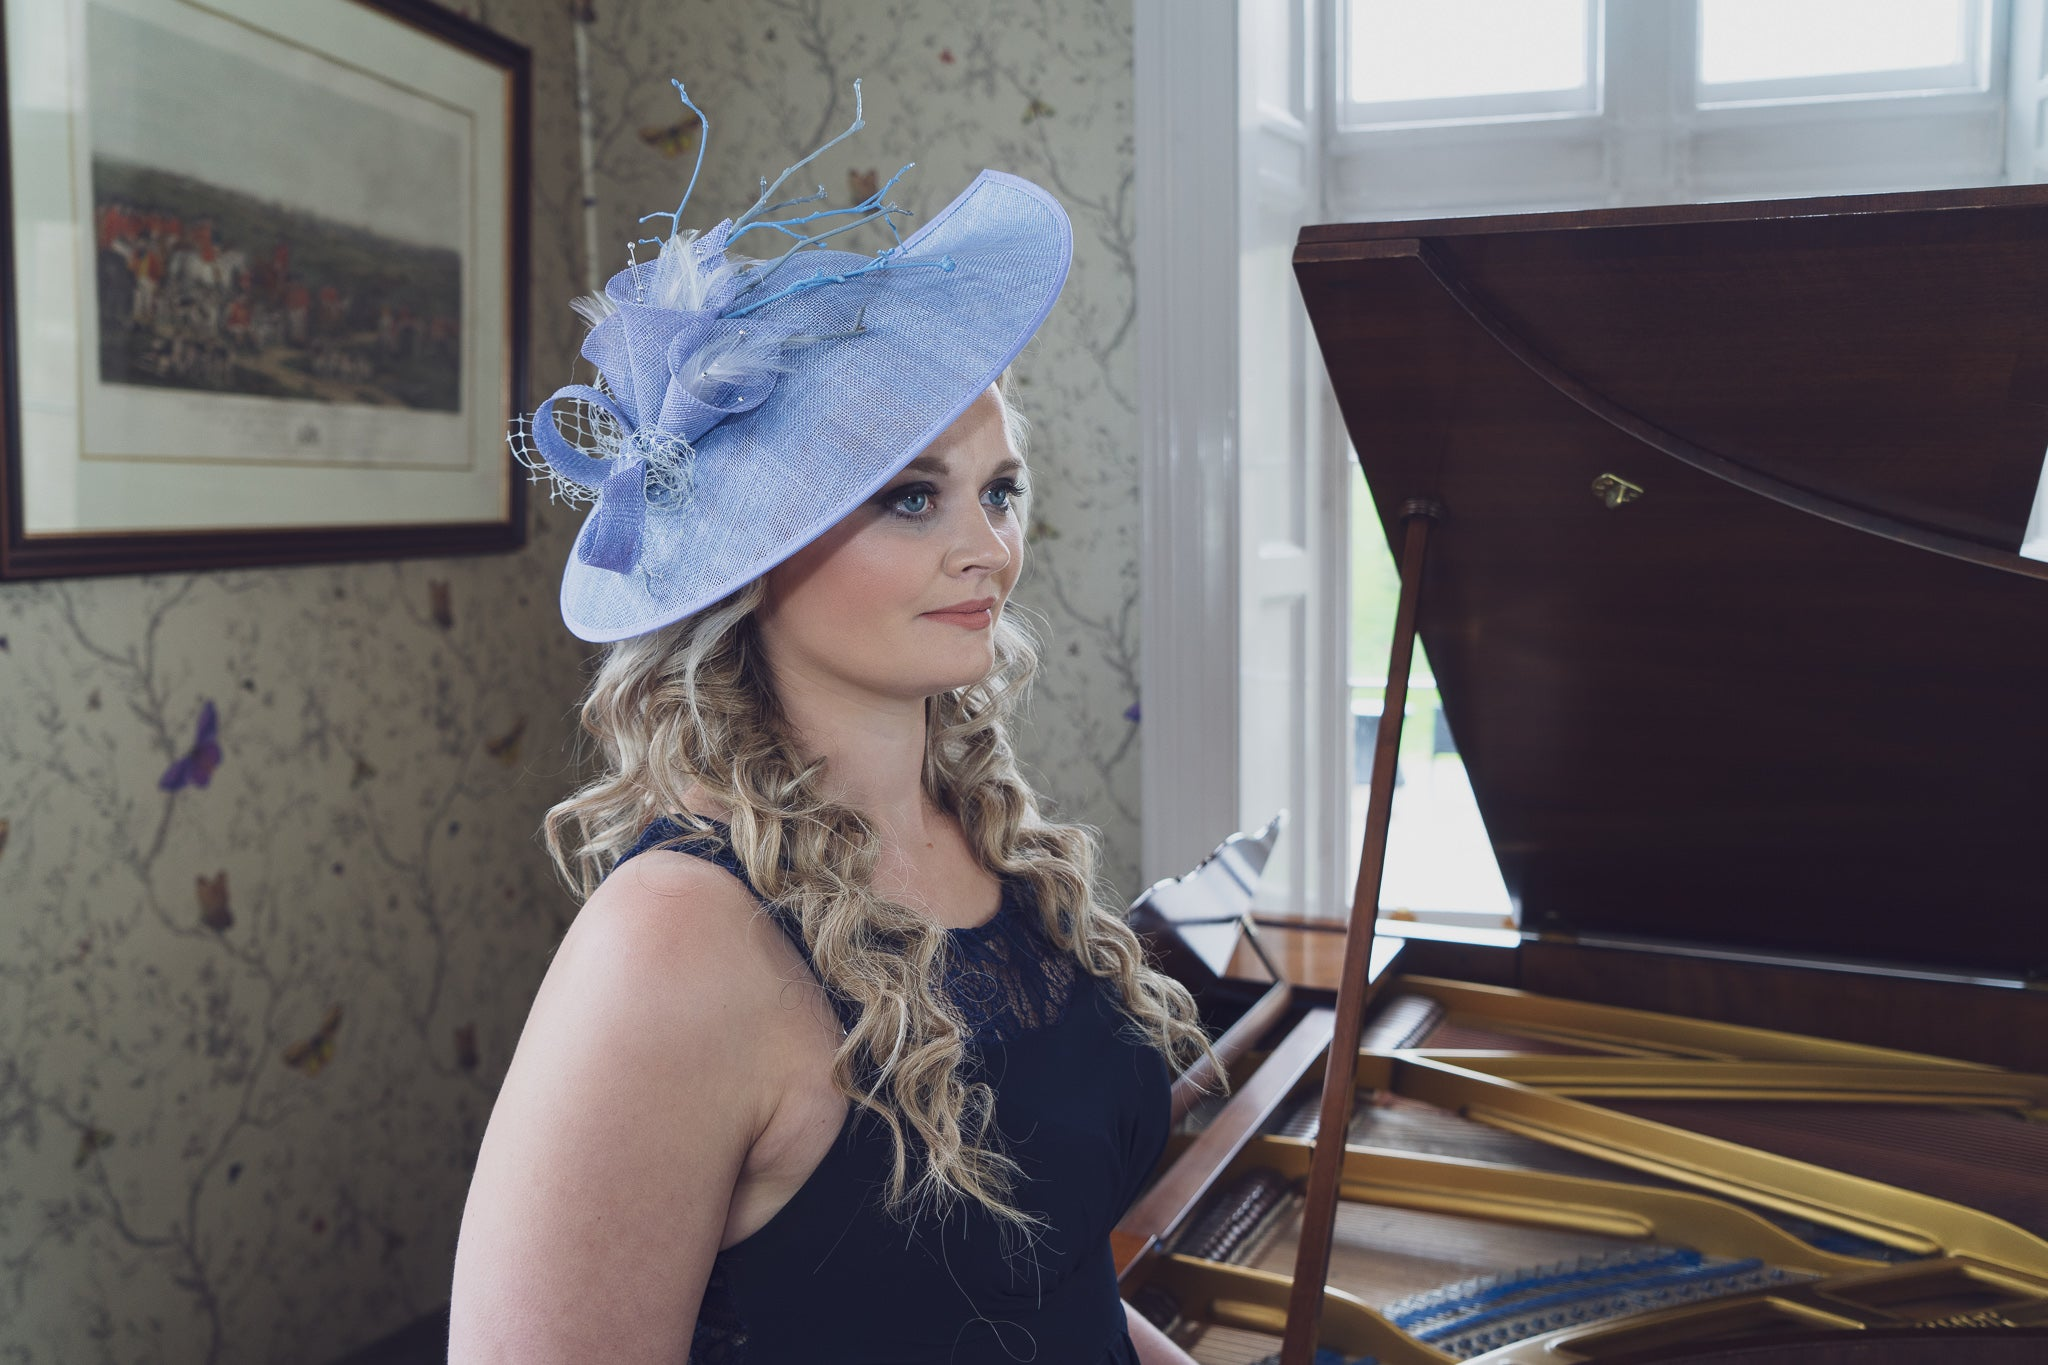 cornflower blue saucer hat